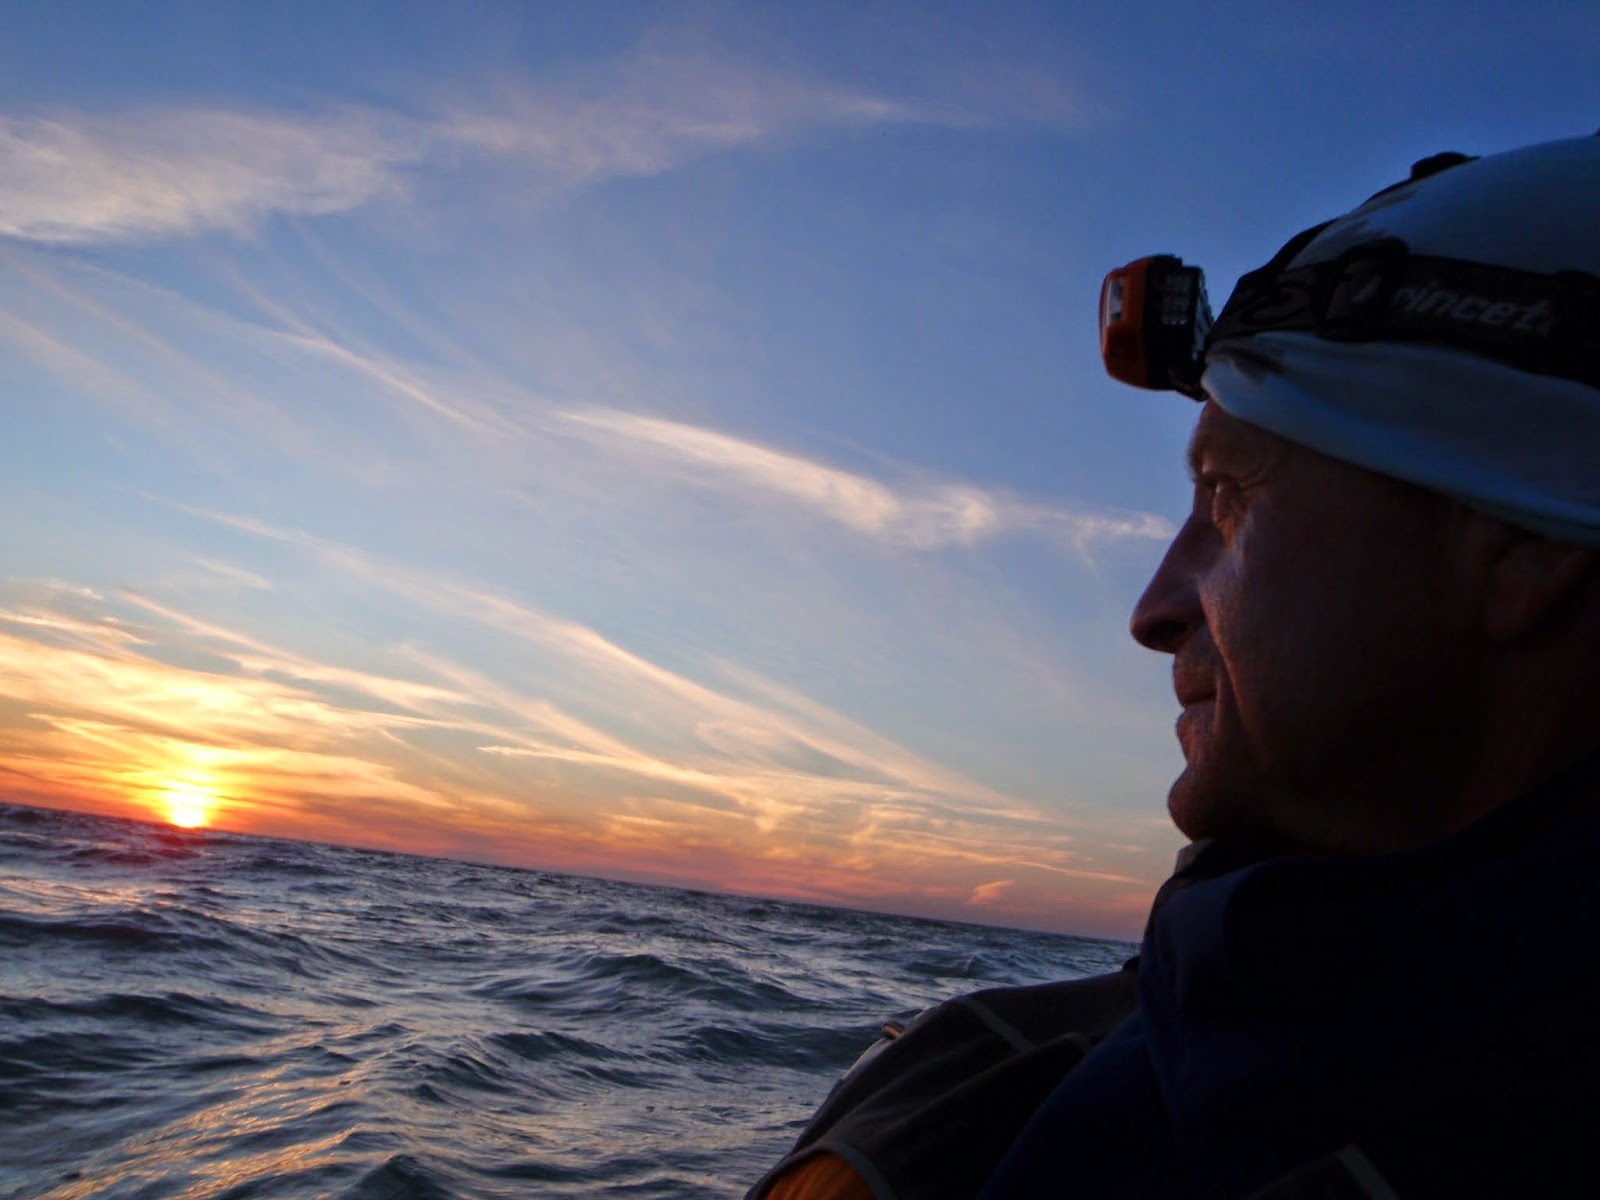 Robert Finlay watching the sunset on the Gulf of Mexico